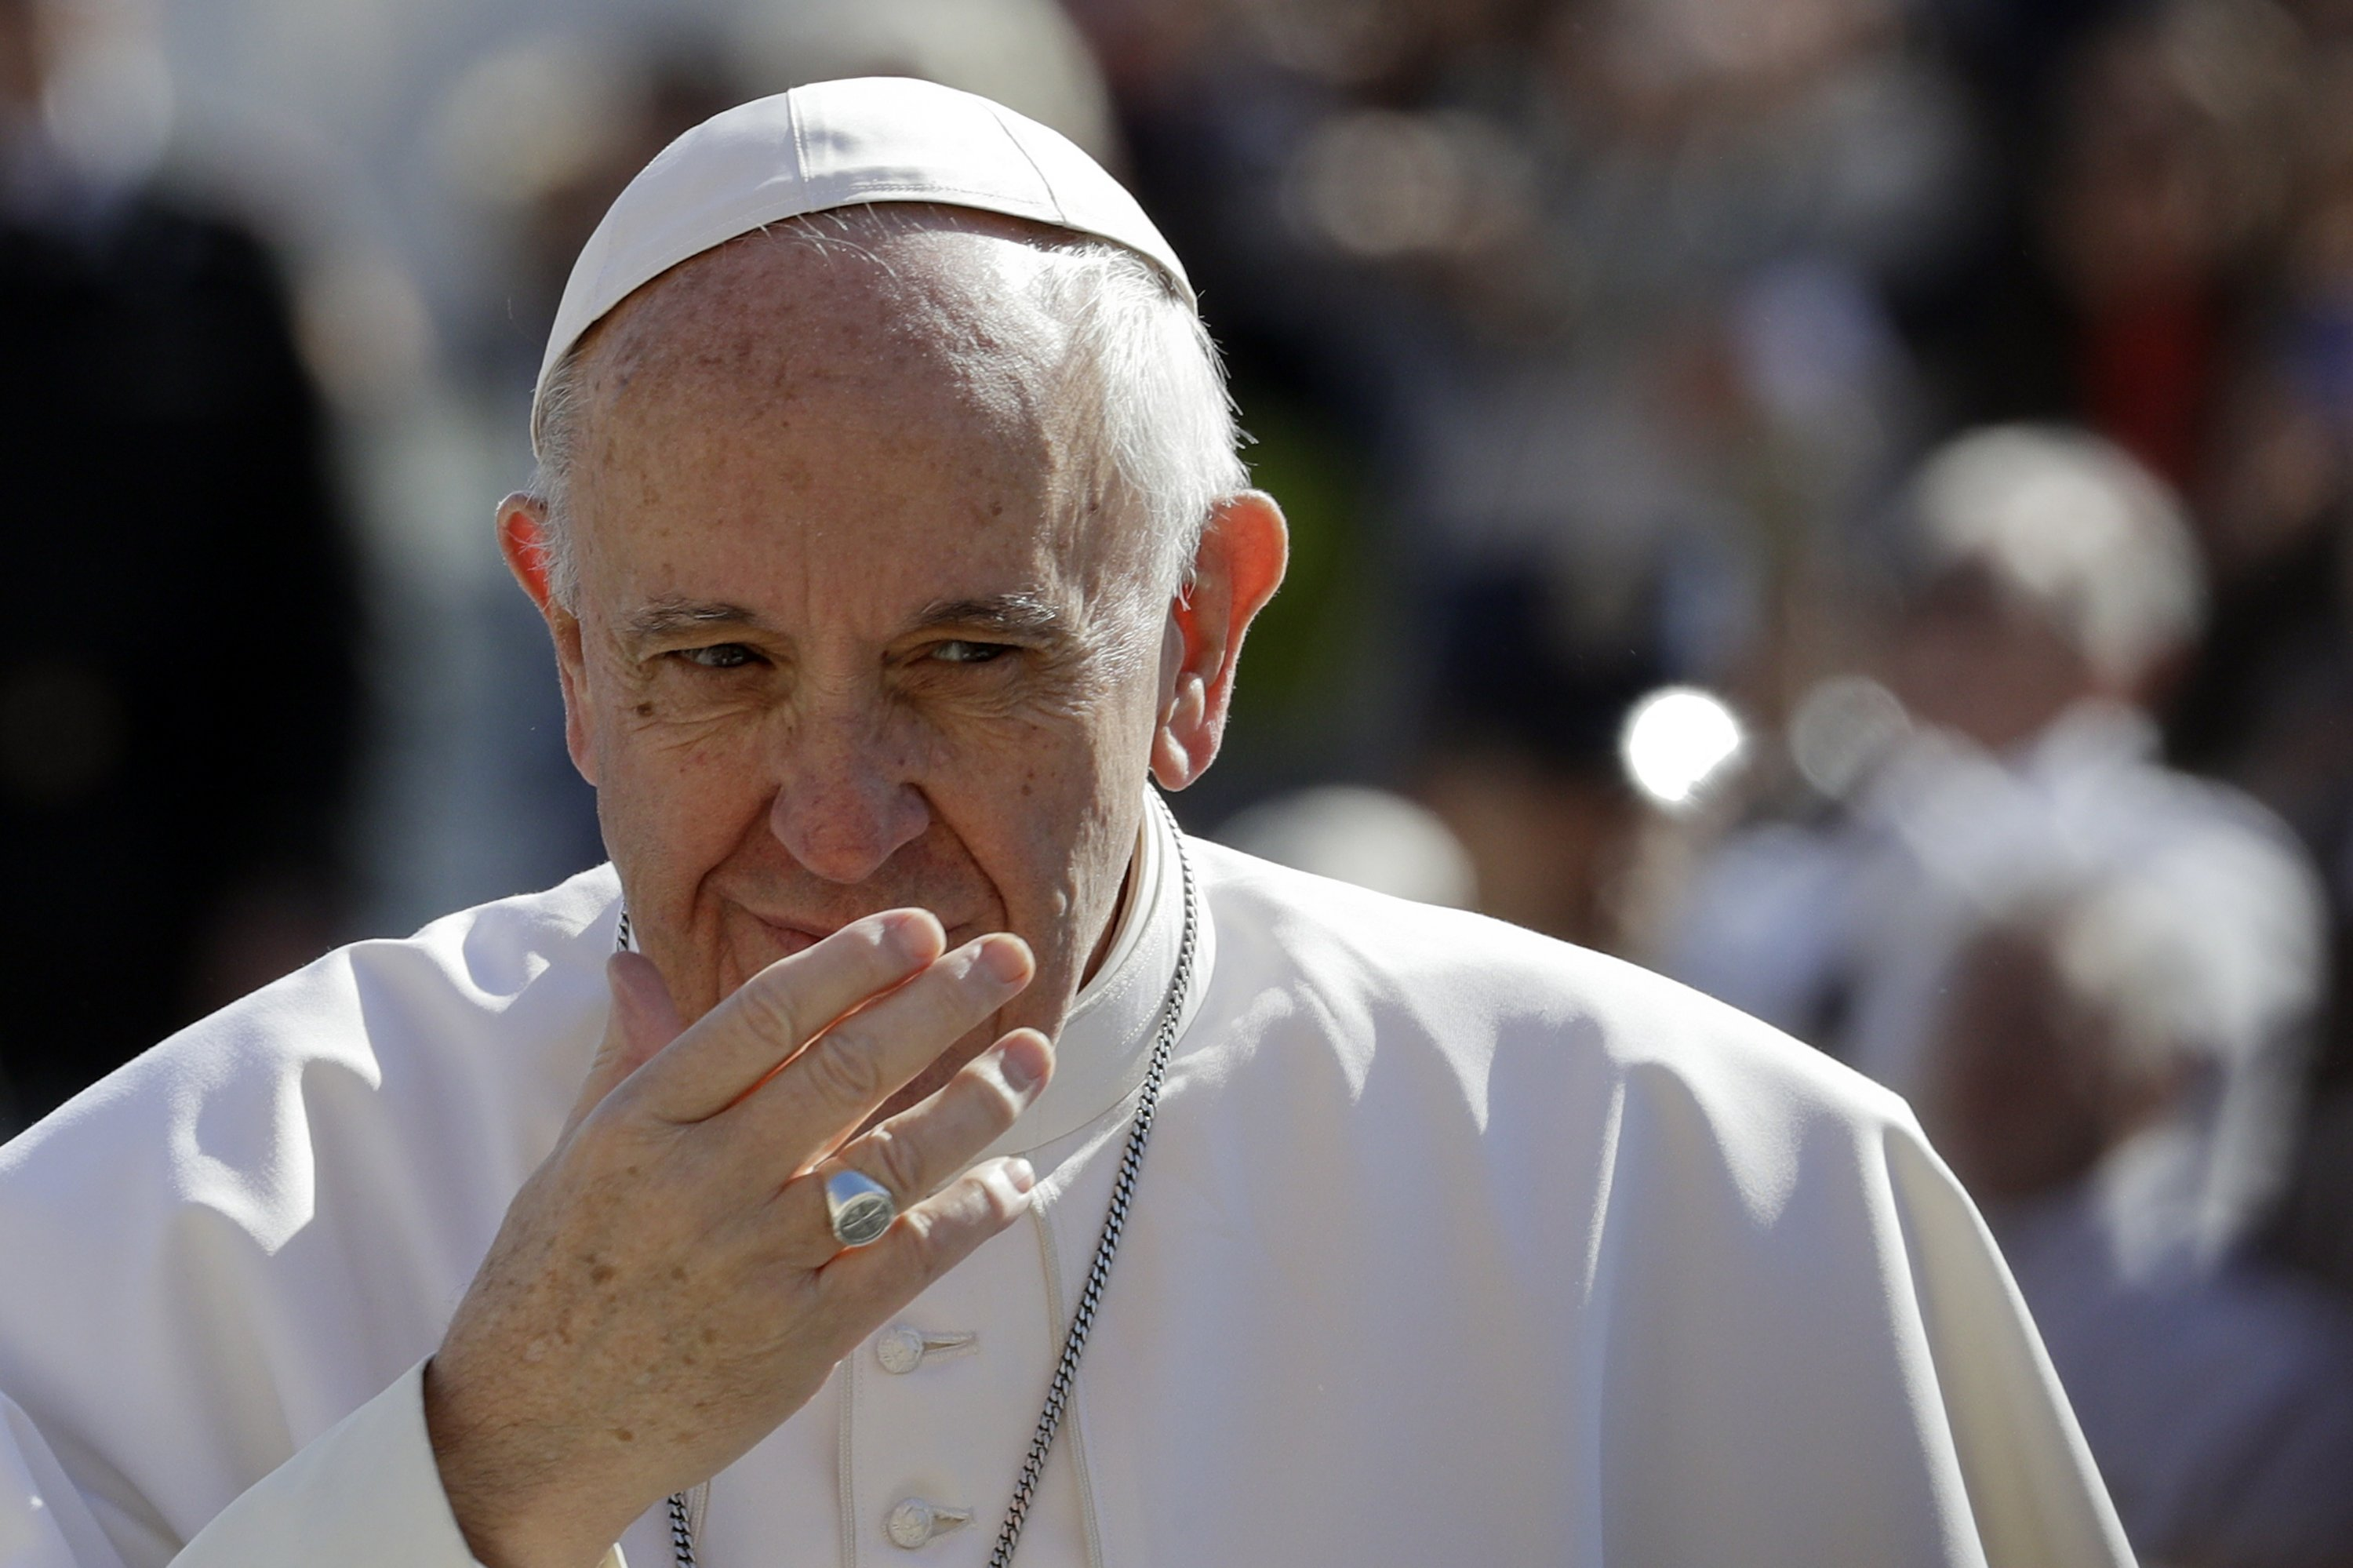 Pope warns of 'very grave sin' when jobs are cut unjustly